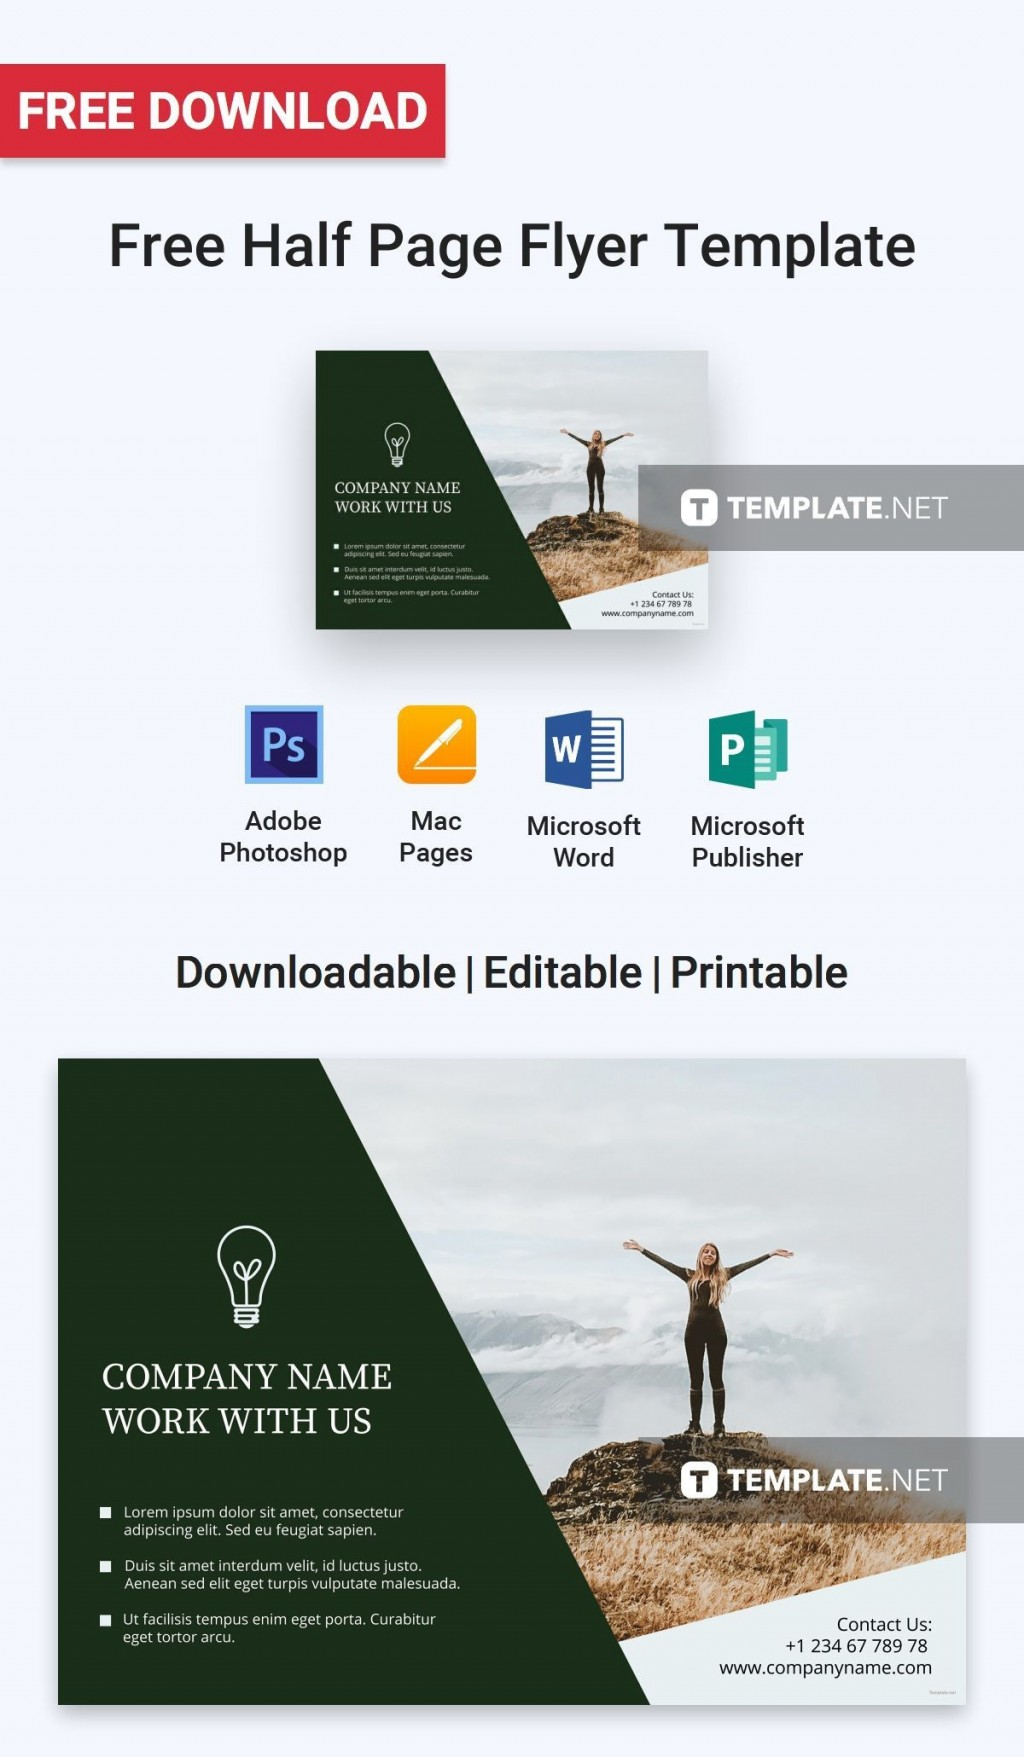 006 Astounding Half Page Flyer Template Photo  Templates Google Doc Free Word CanvaLarge